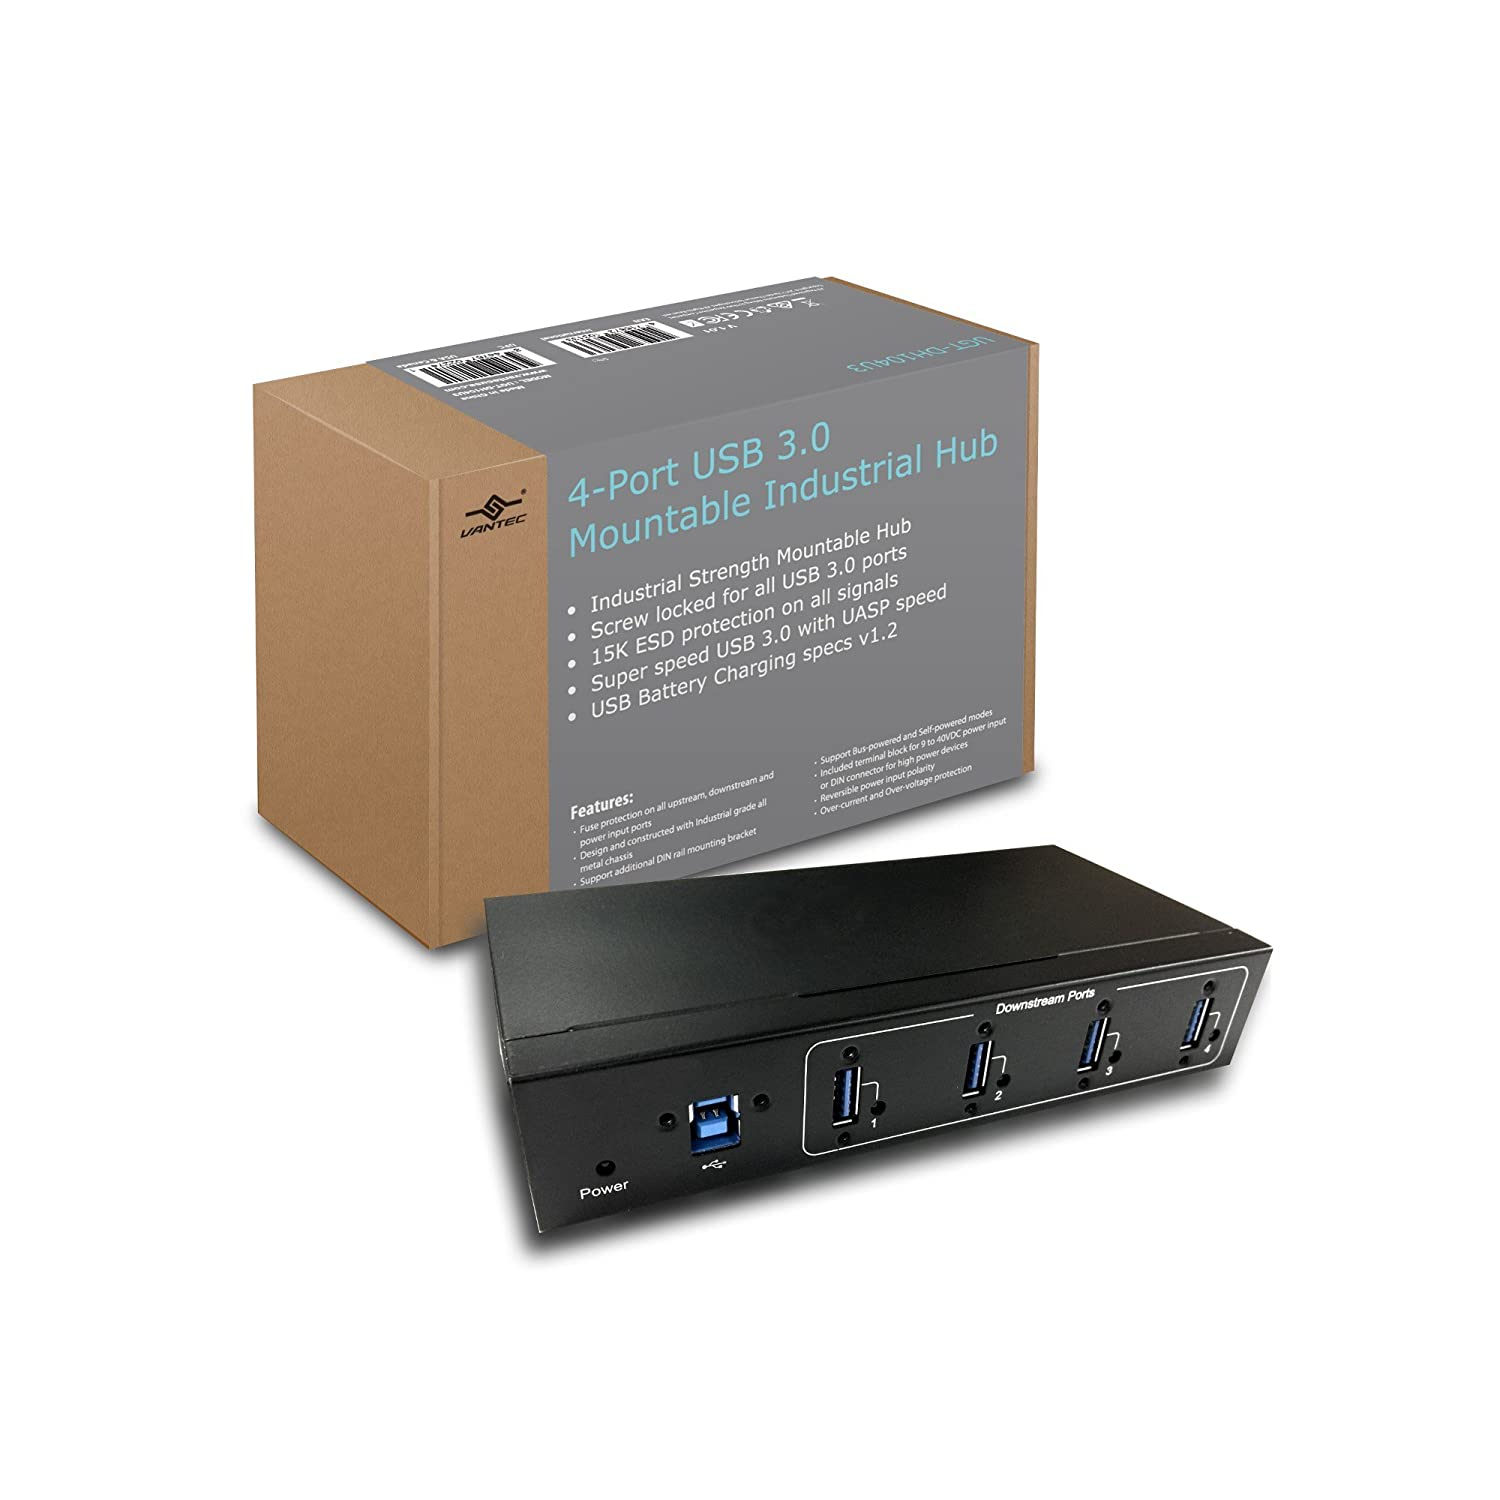 4 Port Usb 30 Mountable Industrial Hub With Screw Fuse Box Locked Cable Computers Accessories